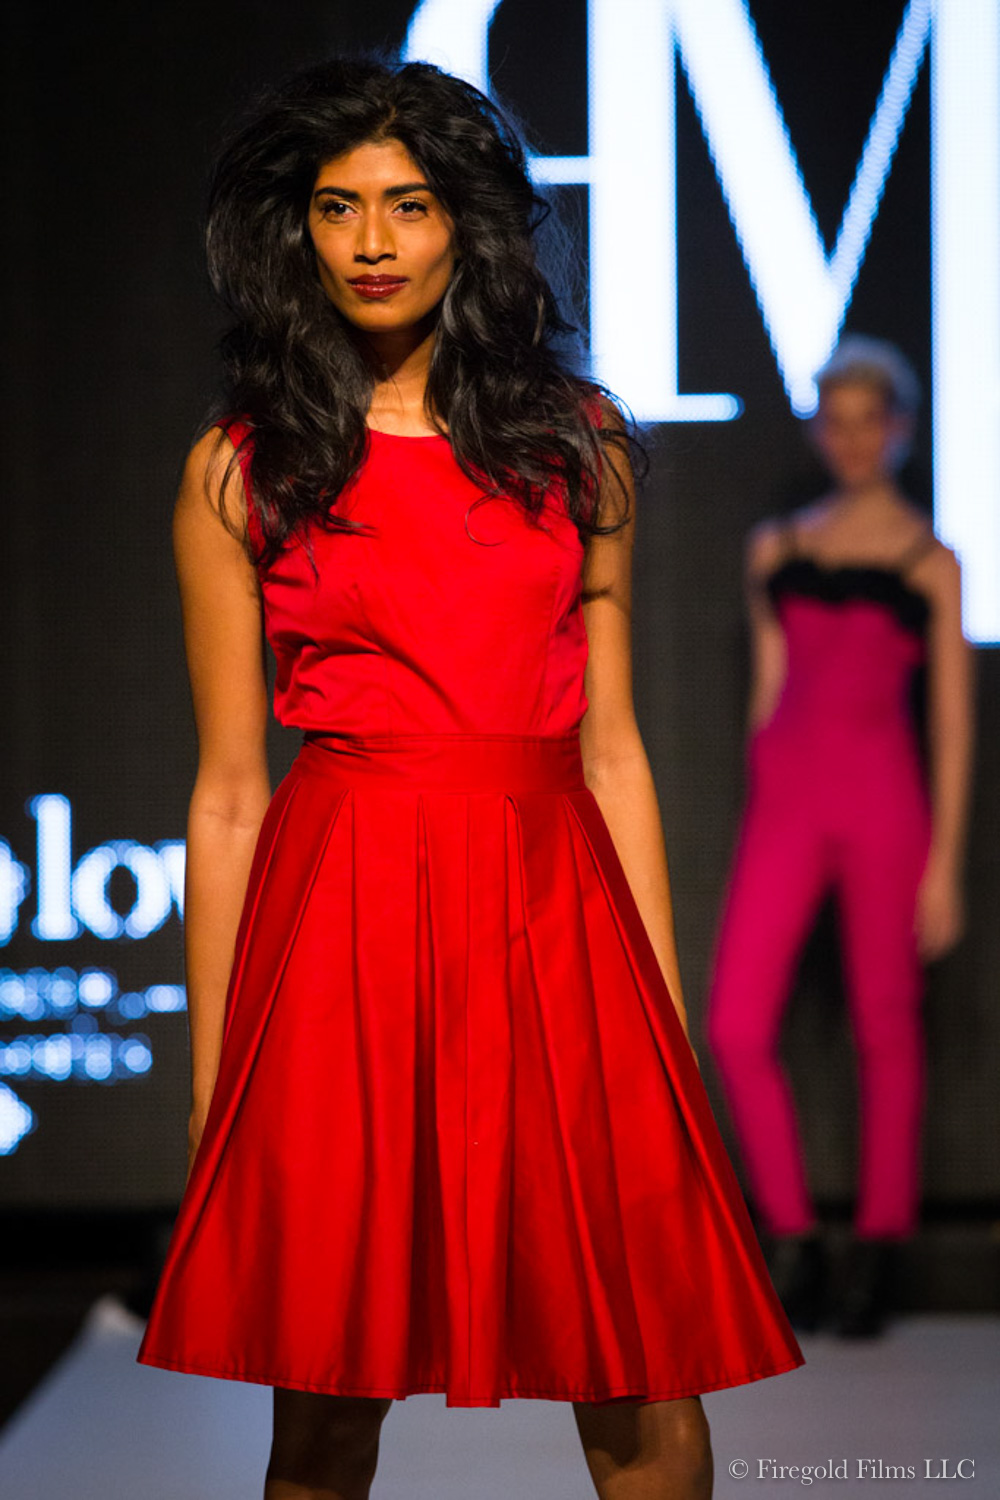 runway-model-red-dress.jpg